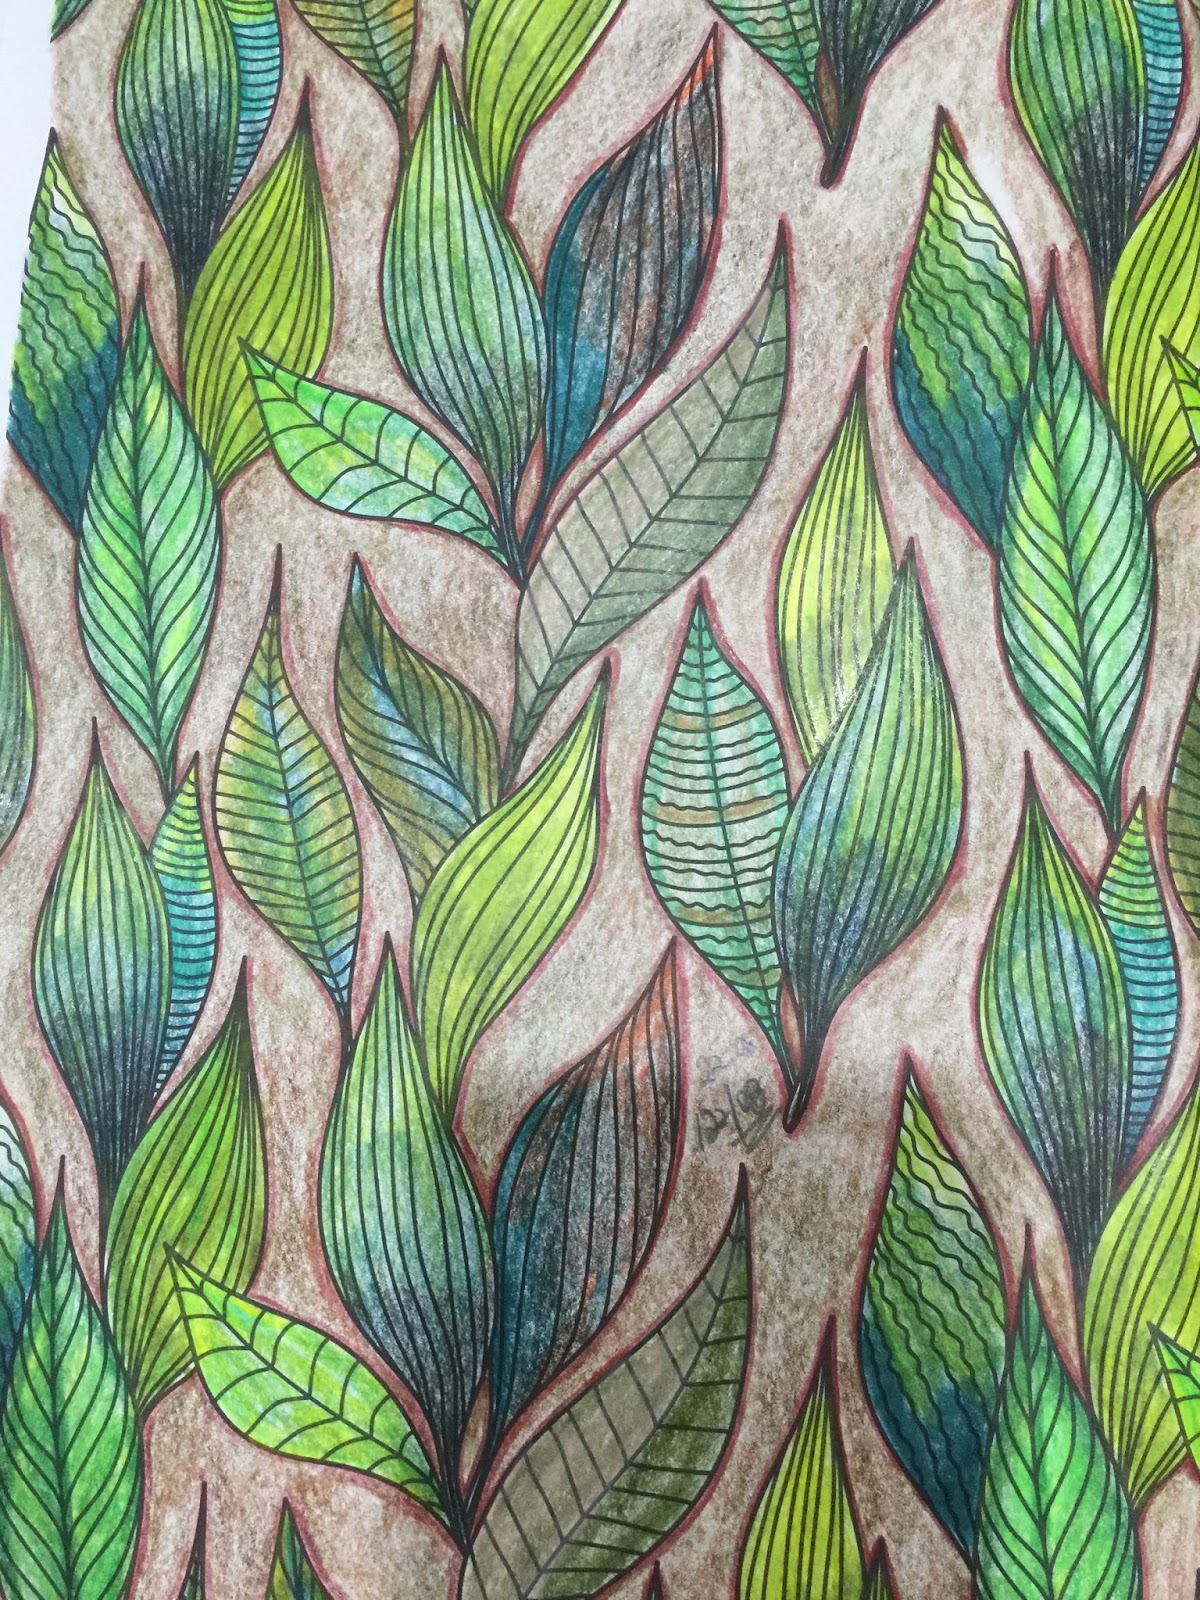 The gorgeous coloring book for grown ups - And The Second One Is With Parched Ground But Green Leaves